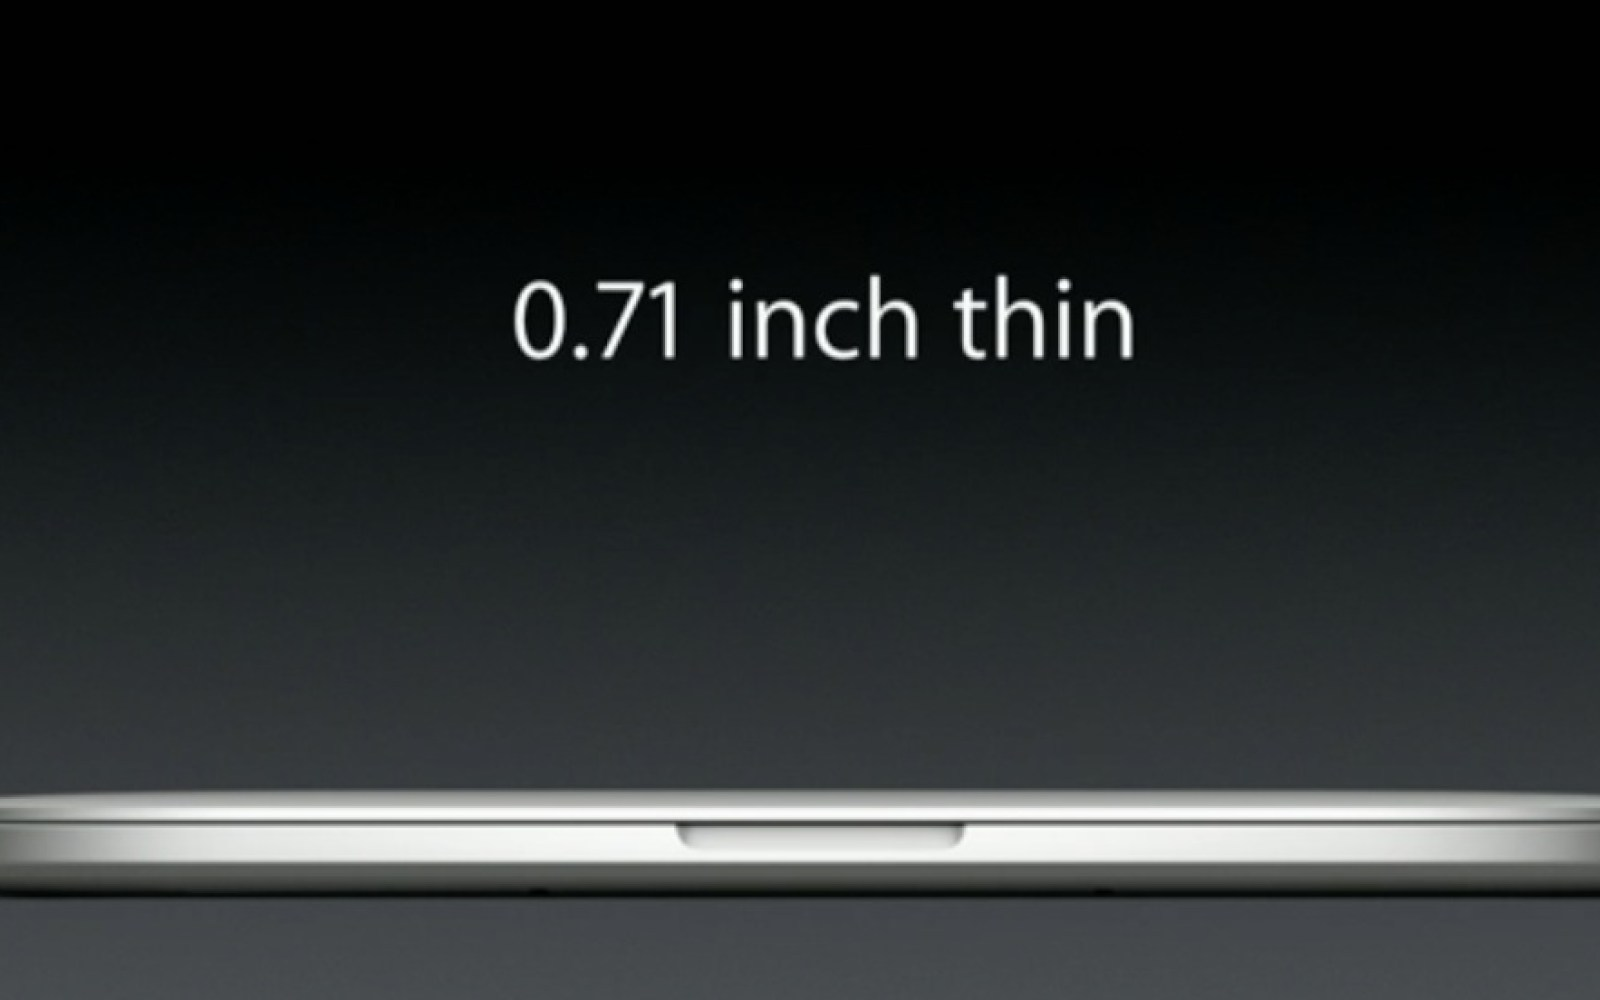 Apple announces thinner, lighter 13-inch MacBook Pro with Retina display; battery life, Thunderbolt 2